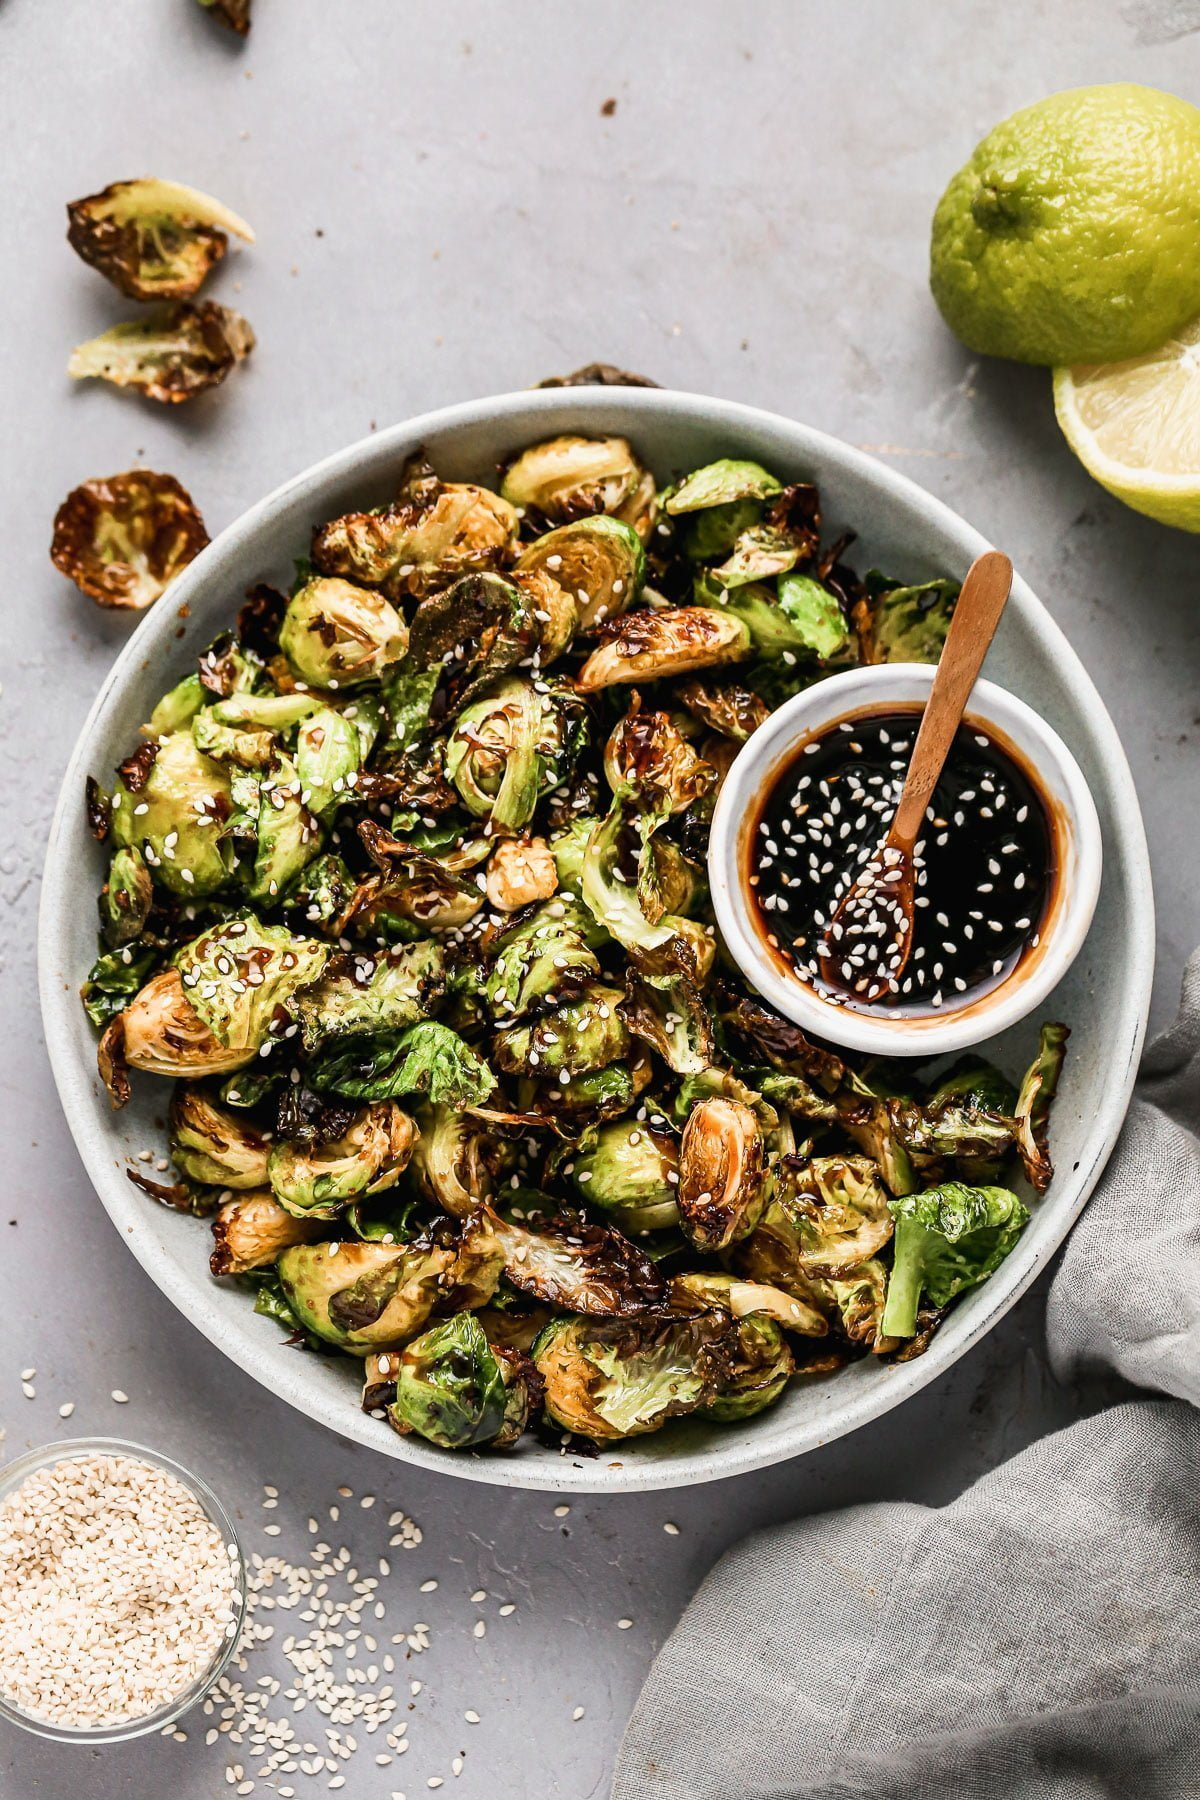 Crispy on the edges, soft on the inside, and dusted with the perfect amount of seasoning, our Air Fryer Brussels Sprouts are the perfect quick and easy veggies to make any night of the week. Once the Brussels sprouts are done in the air fryer we toss them in a sticky homemade honey soy glaze, sprinkle with sesame seeds and then serve with extra sauce for dipping. (You'll want to dip.)